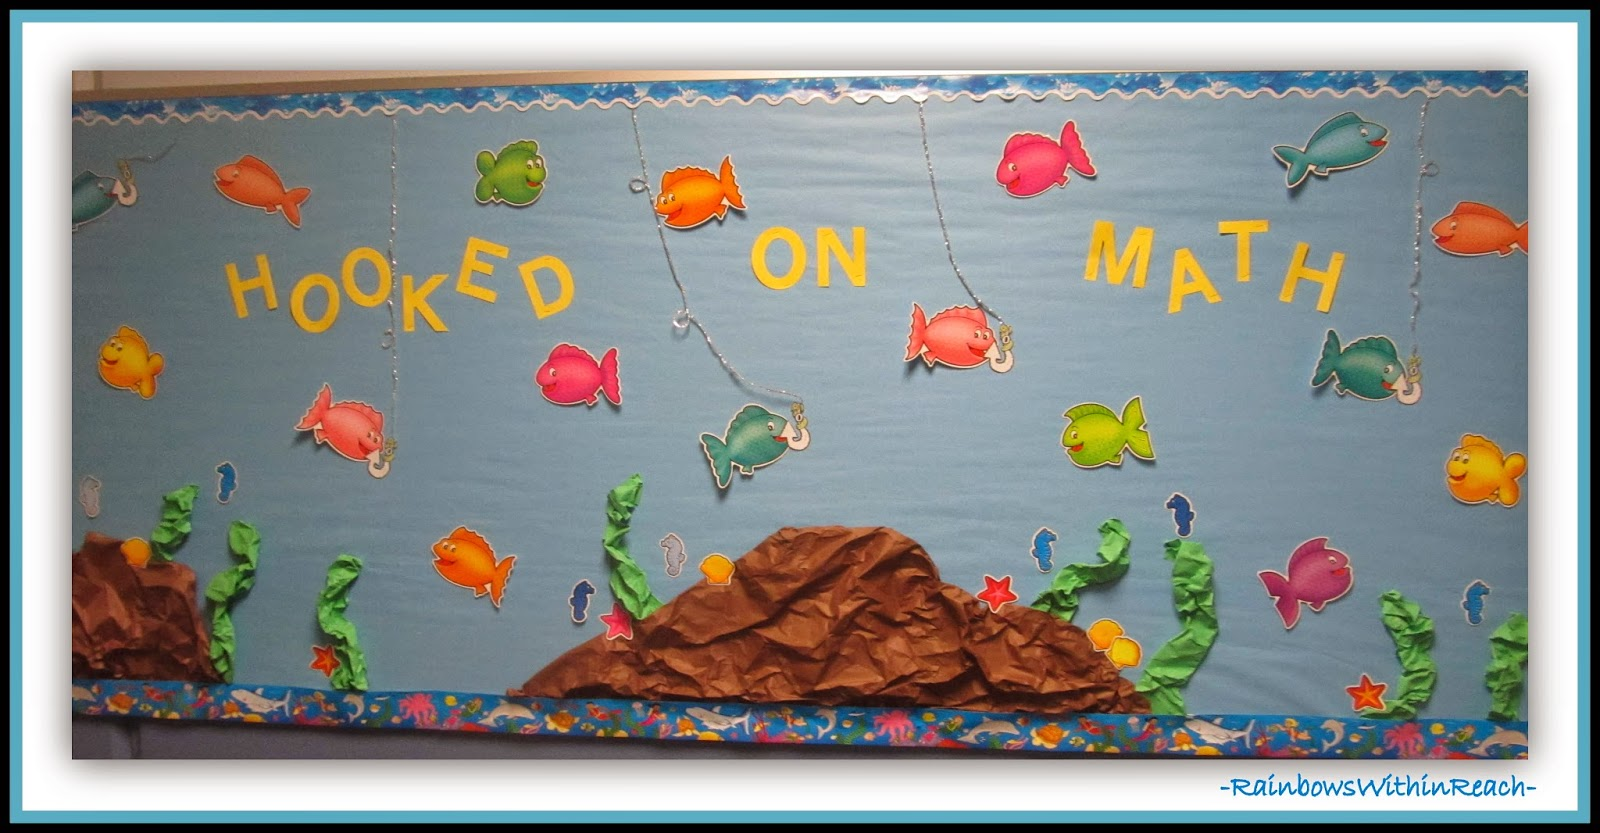 Get Hooked on Math Bulletin Board at RainbowsWithinReach